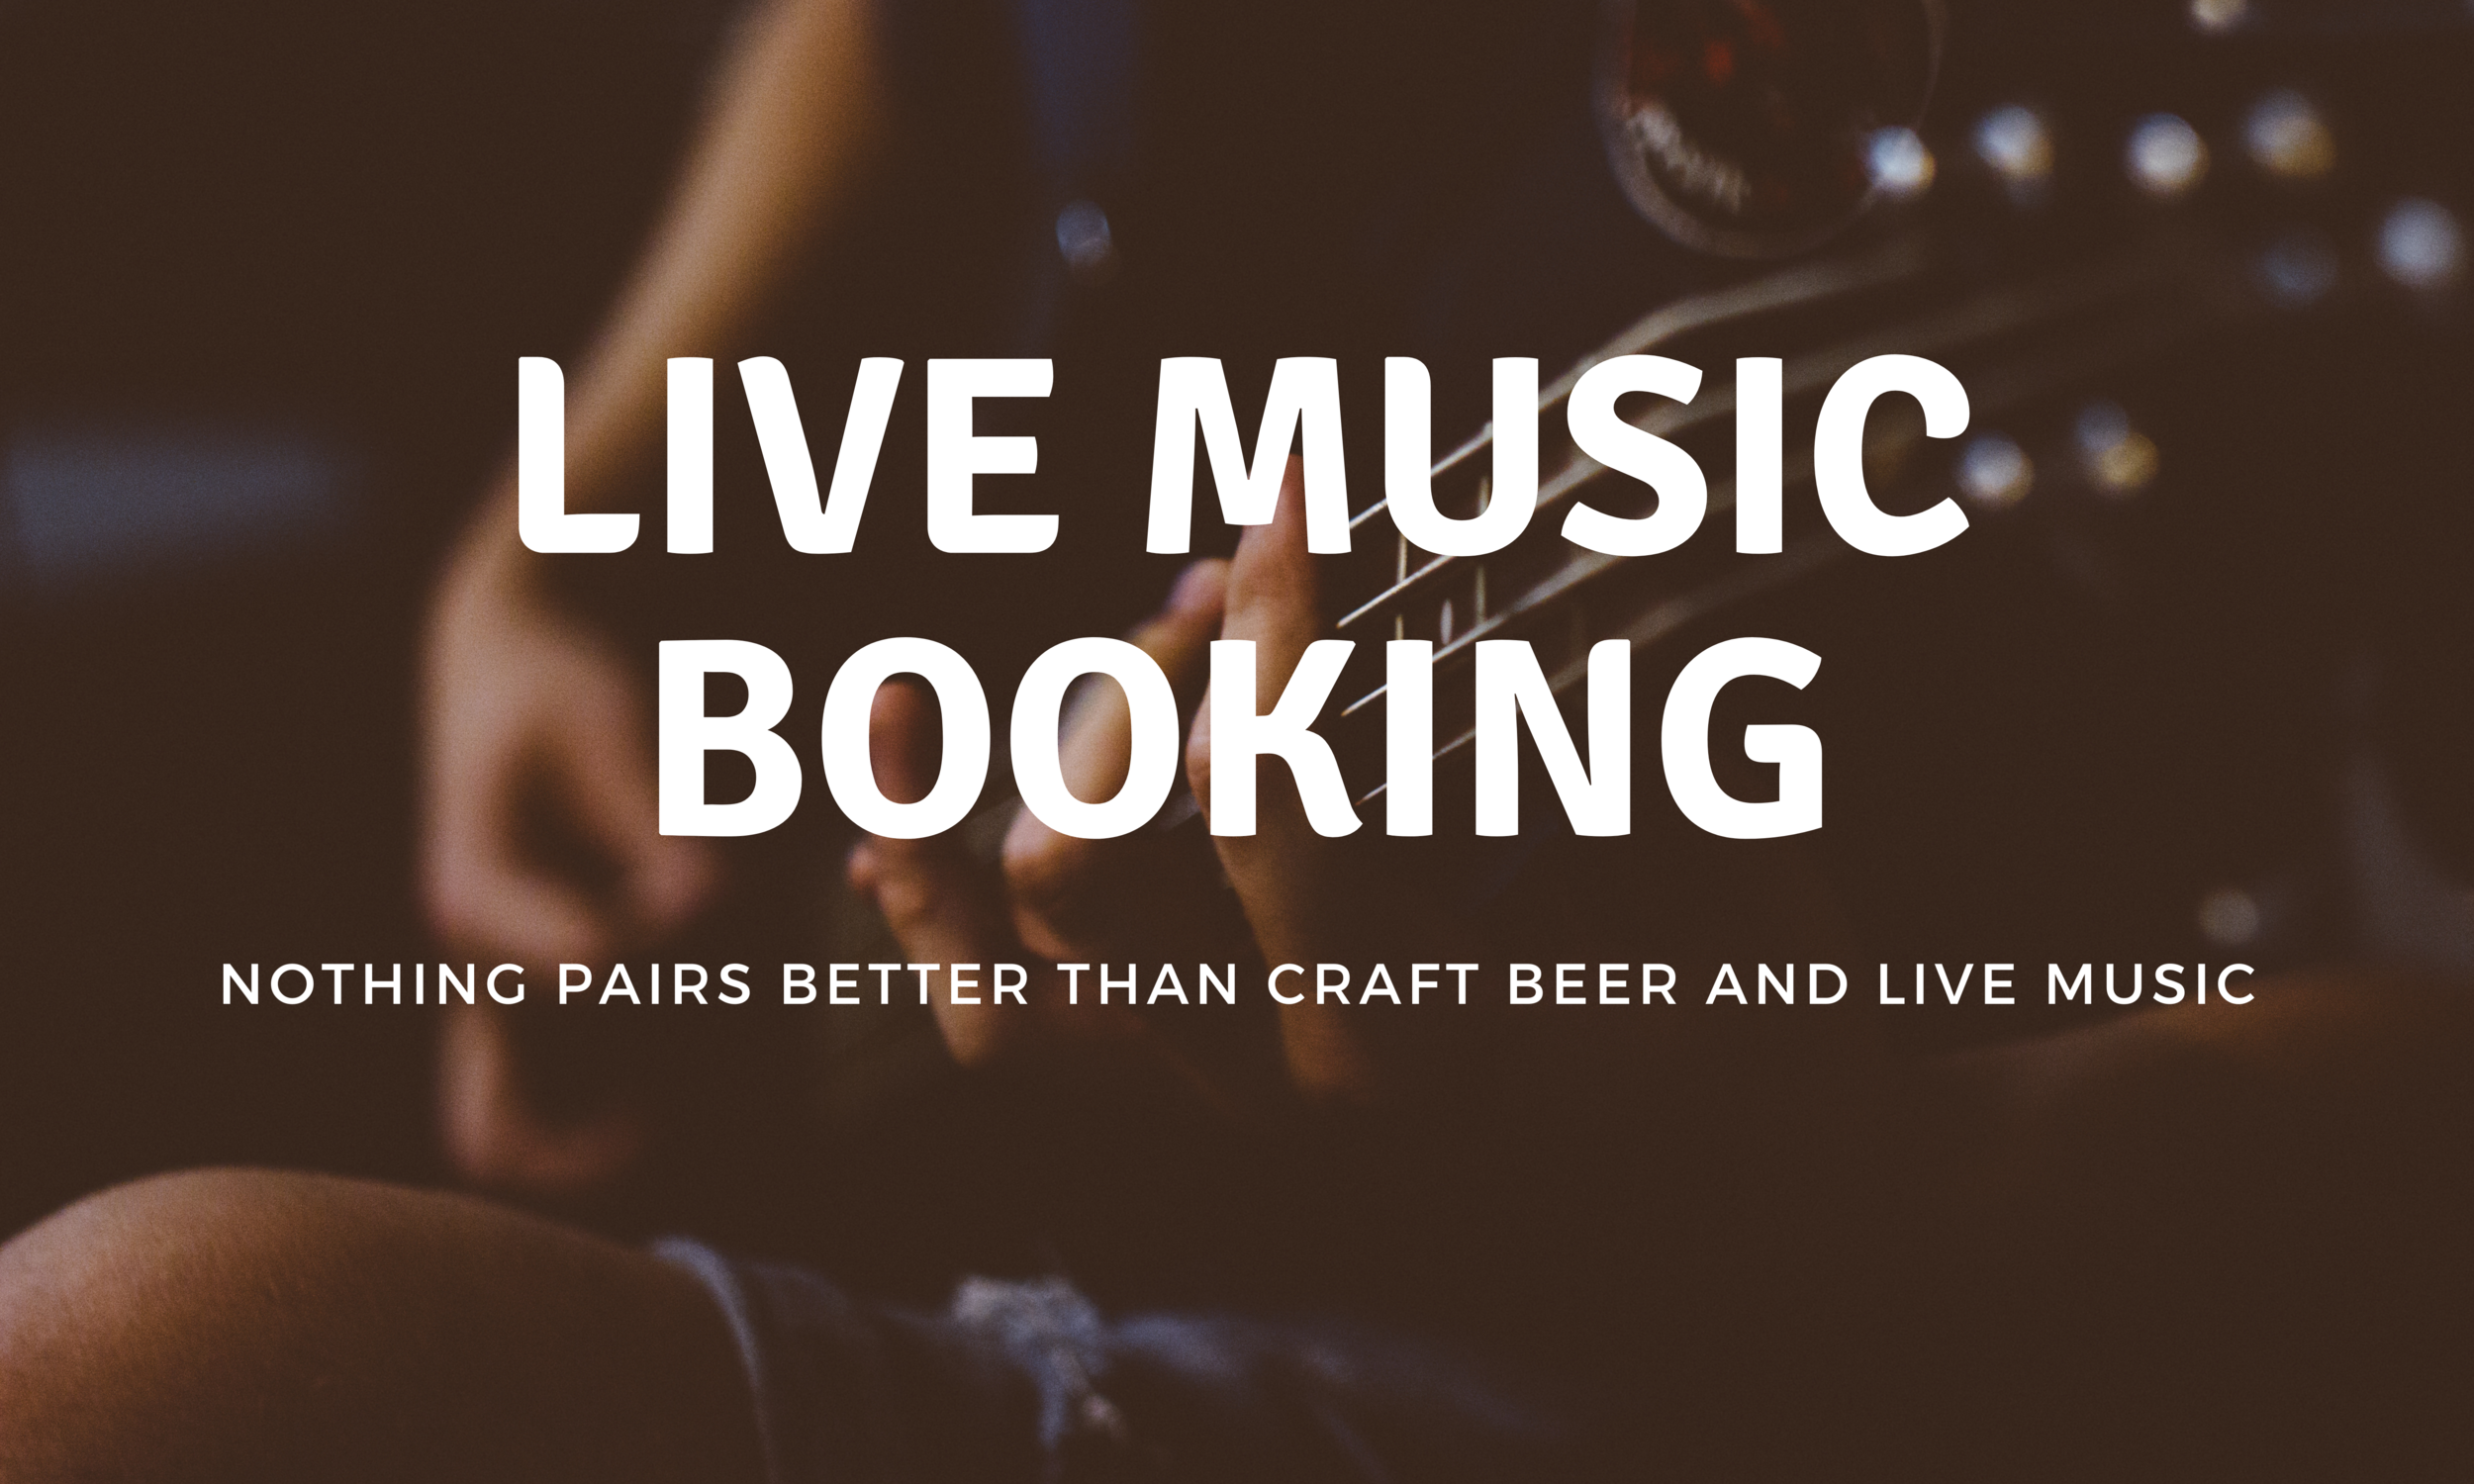 LIVE MUSIC BOOKING (1).png